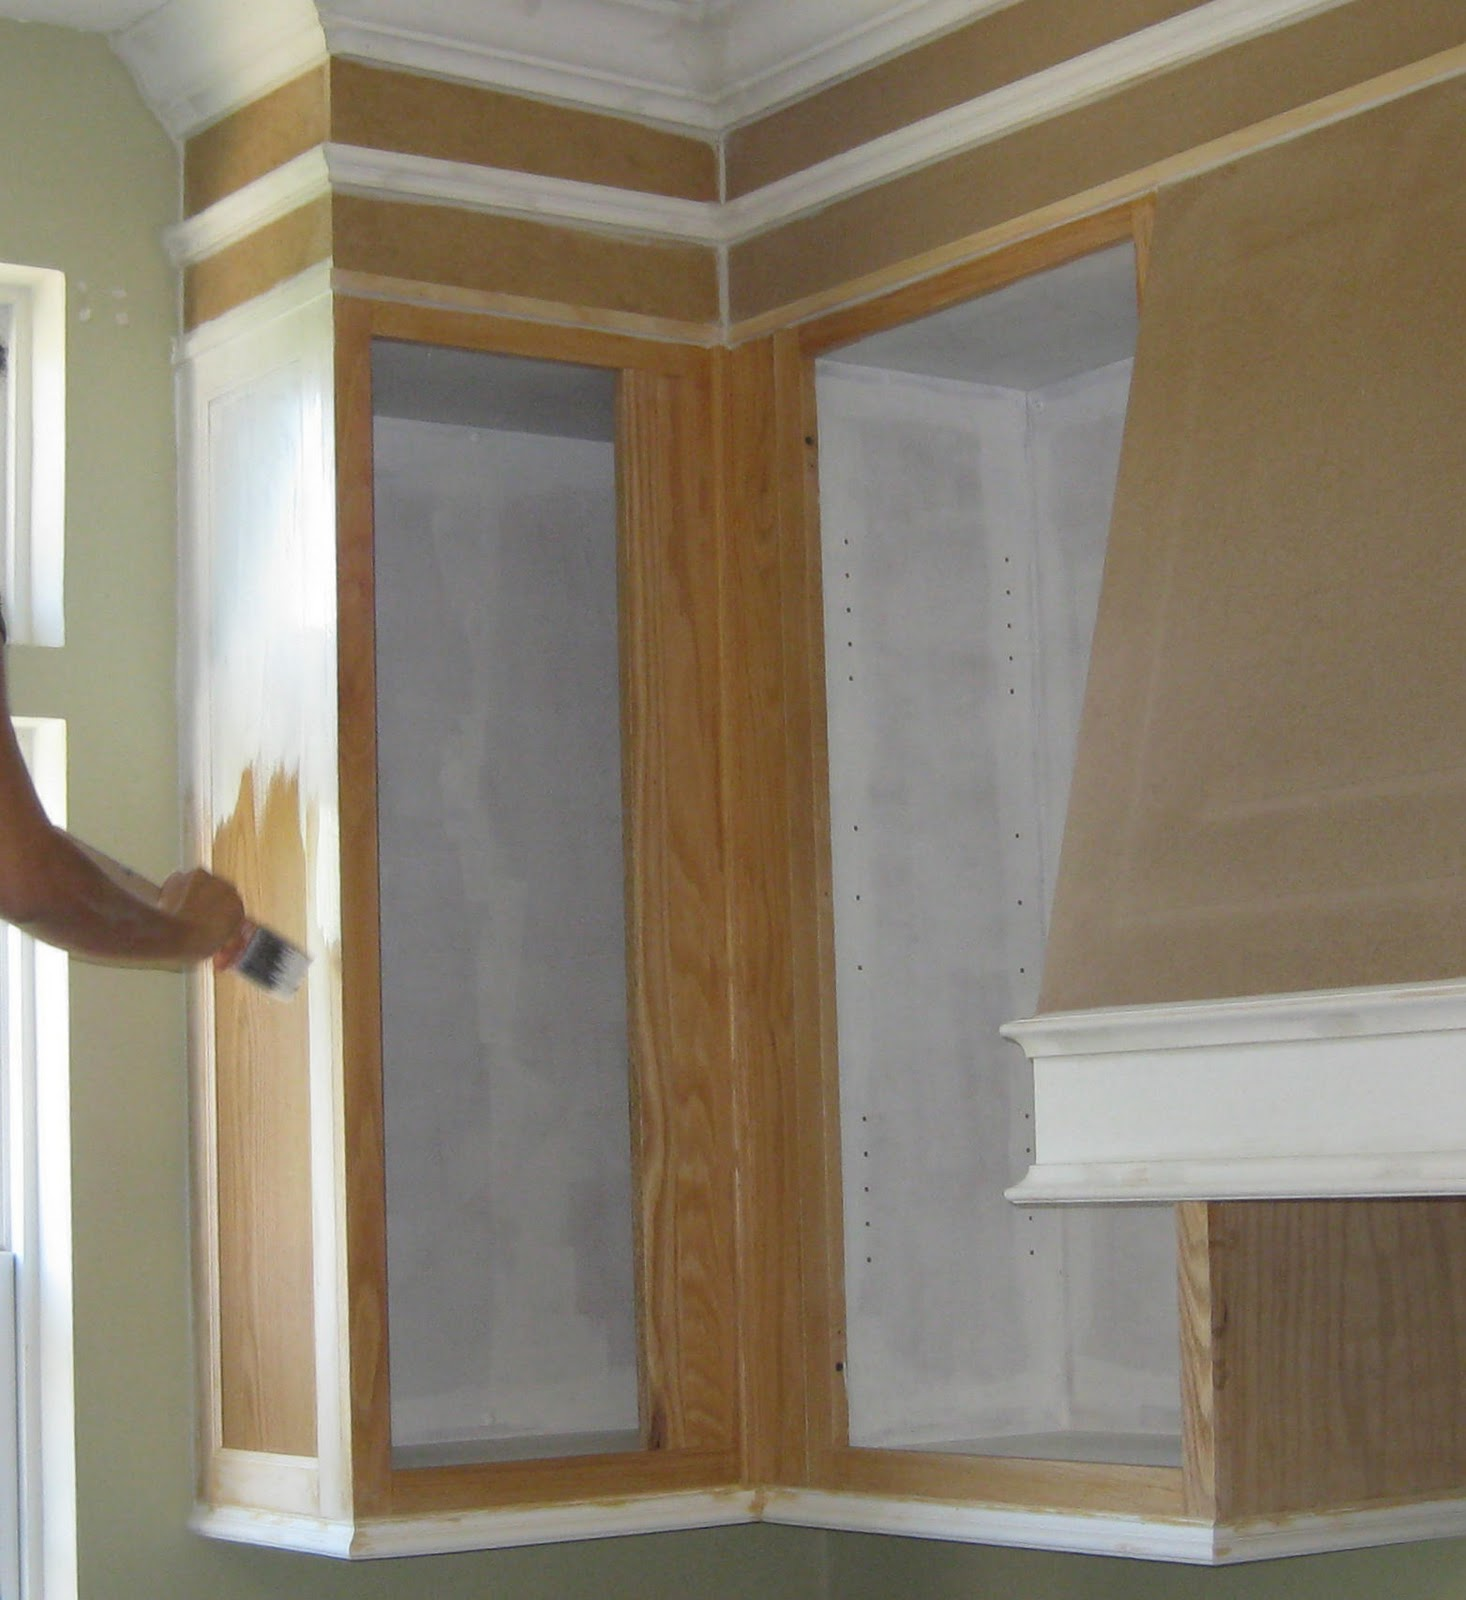 Painting the kitchen cabinets remodelando la casa for Painting your kitchen cabinets